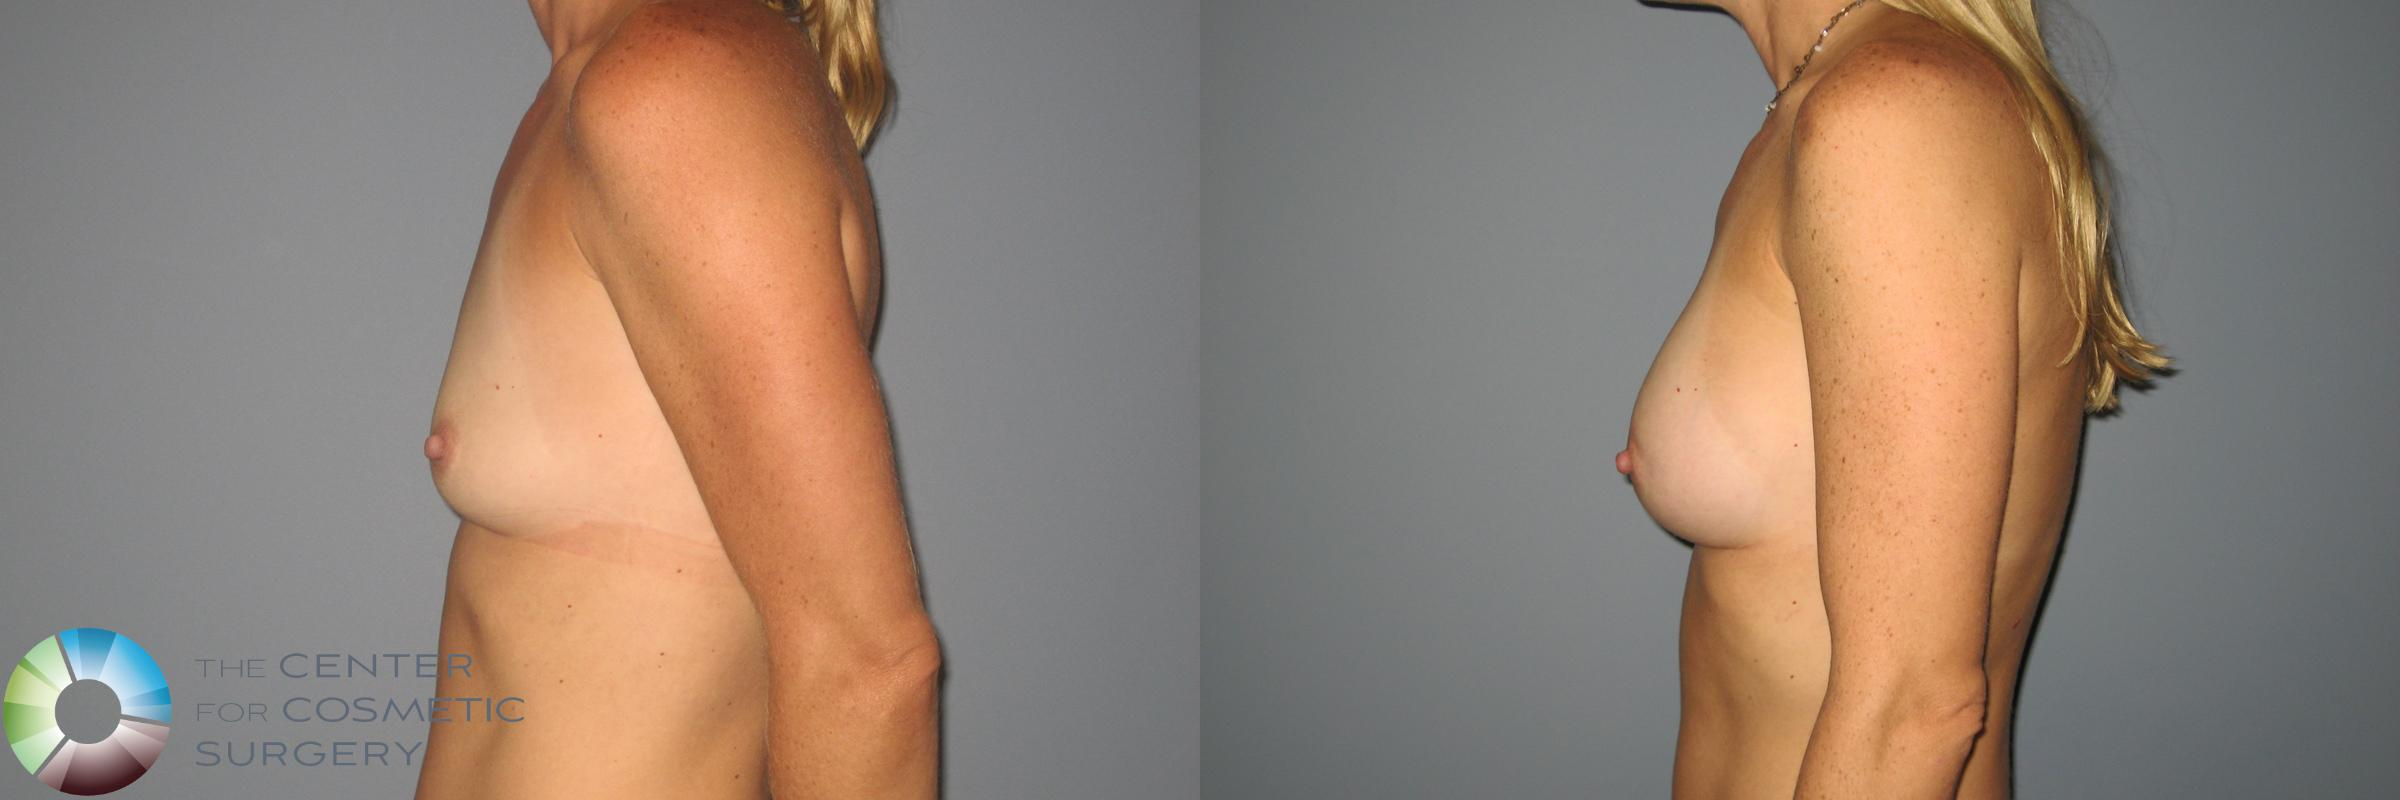 Breast Augmentation Case 871 Before & After View #3 | Golden, CO | The Center for Cosmetic Surgery